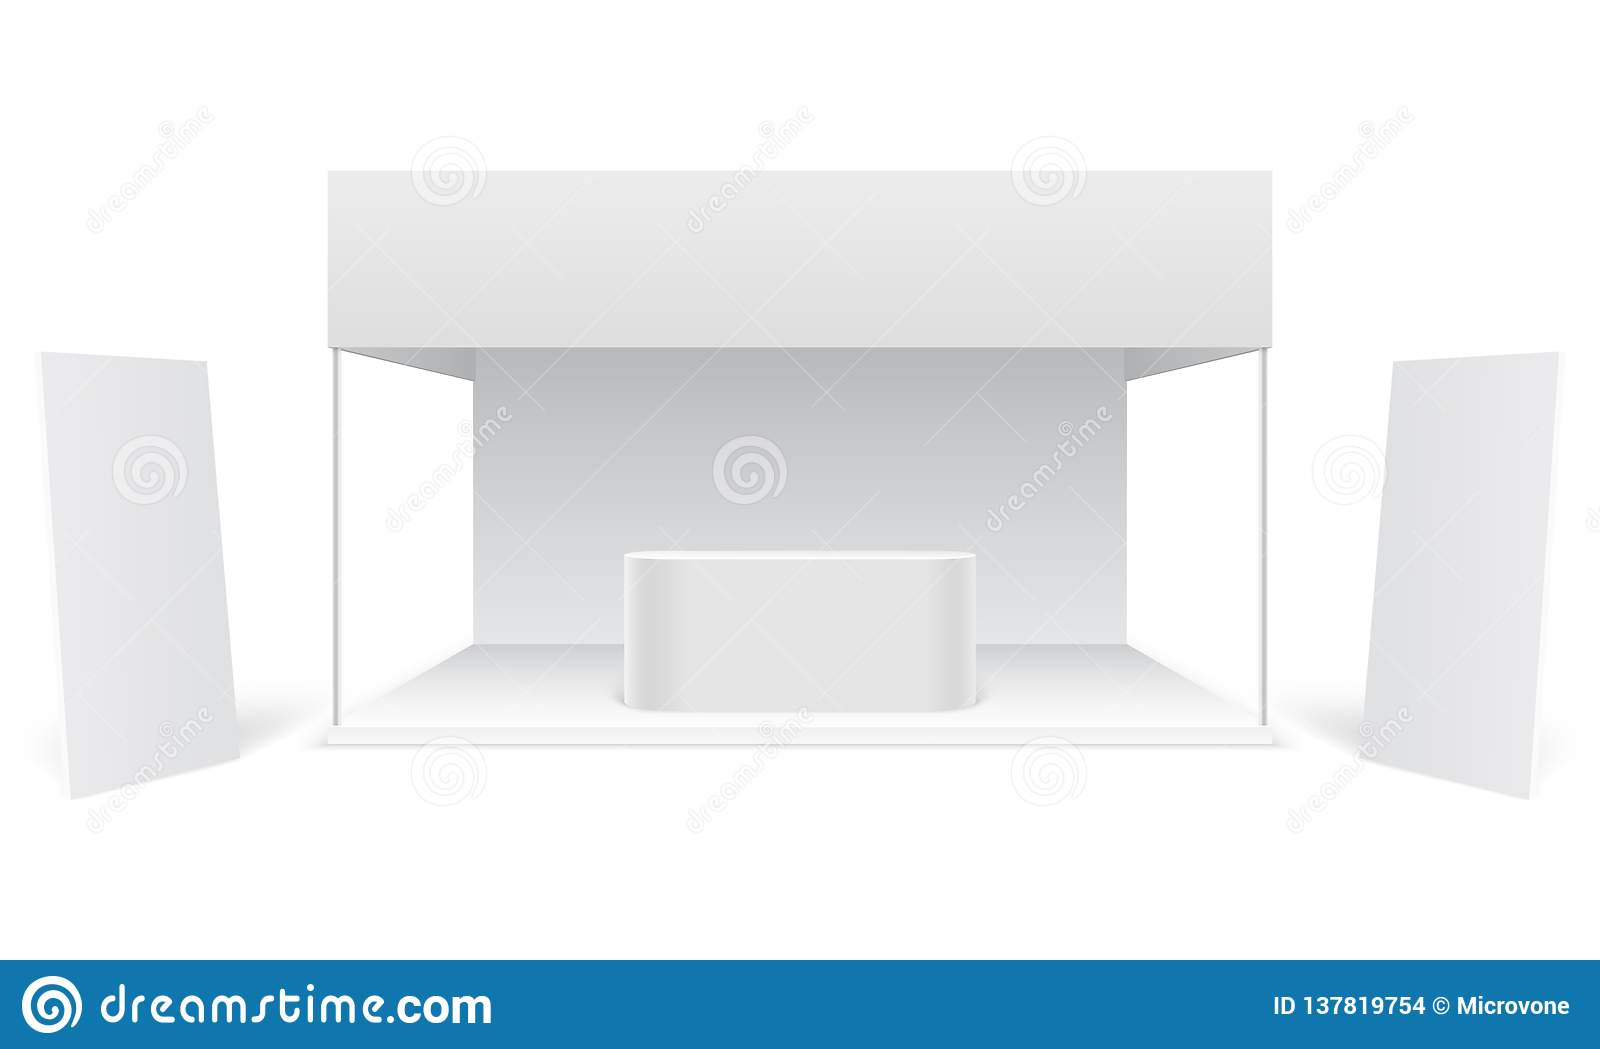 Exhibition Stall Mockup : Event exhibition trade stand. white promotional advertising booth